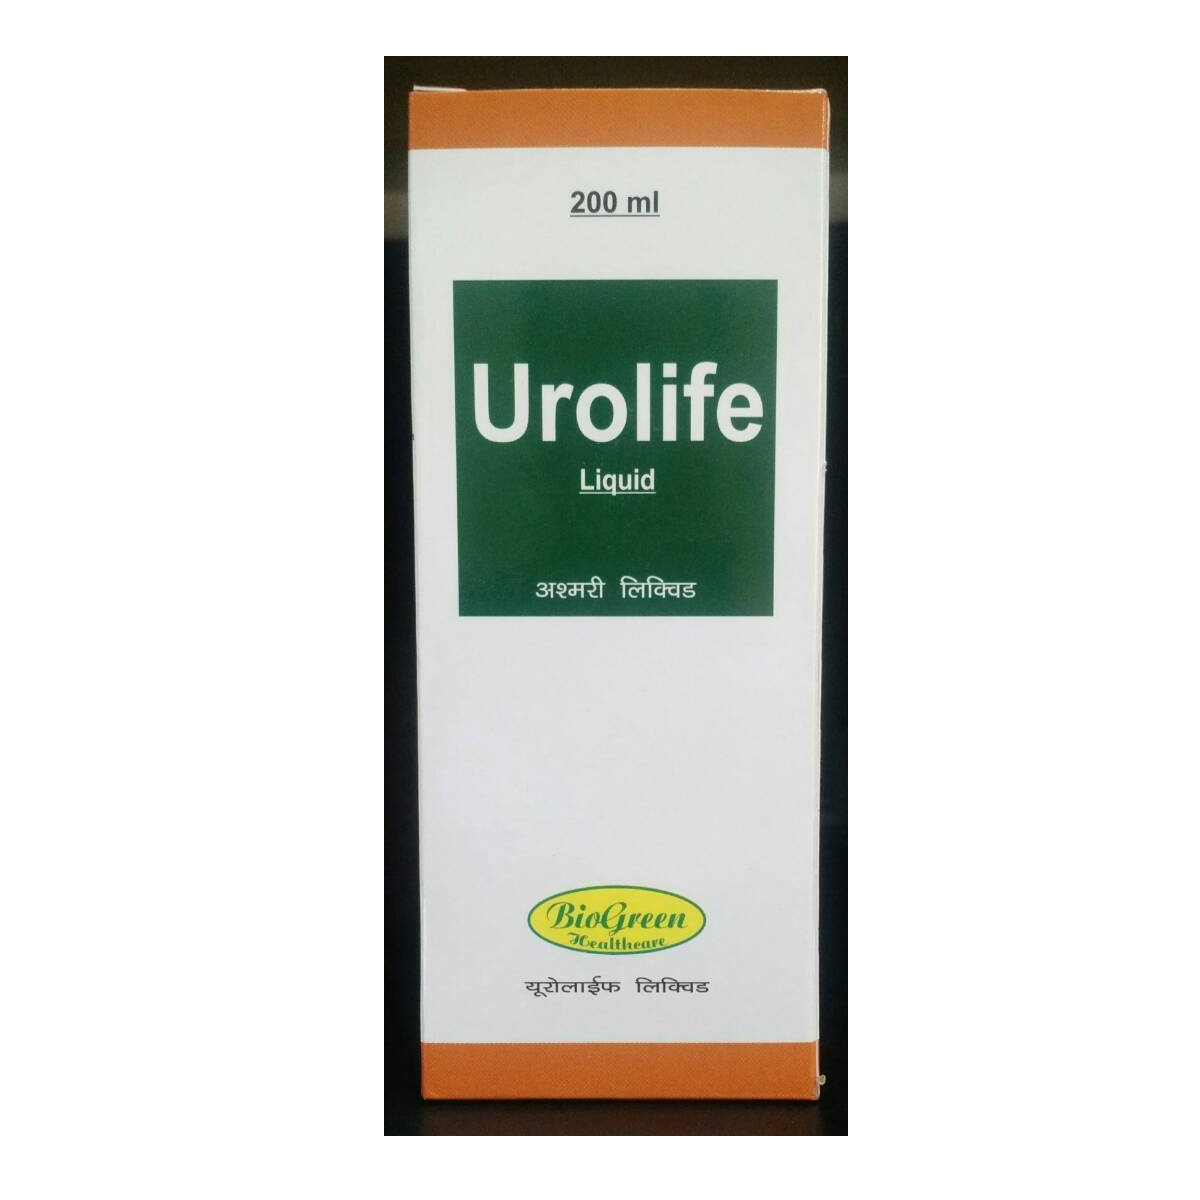 Urolife Liquid In Seoni